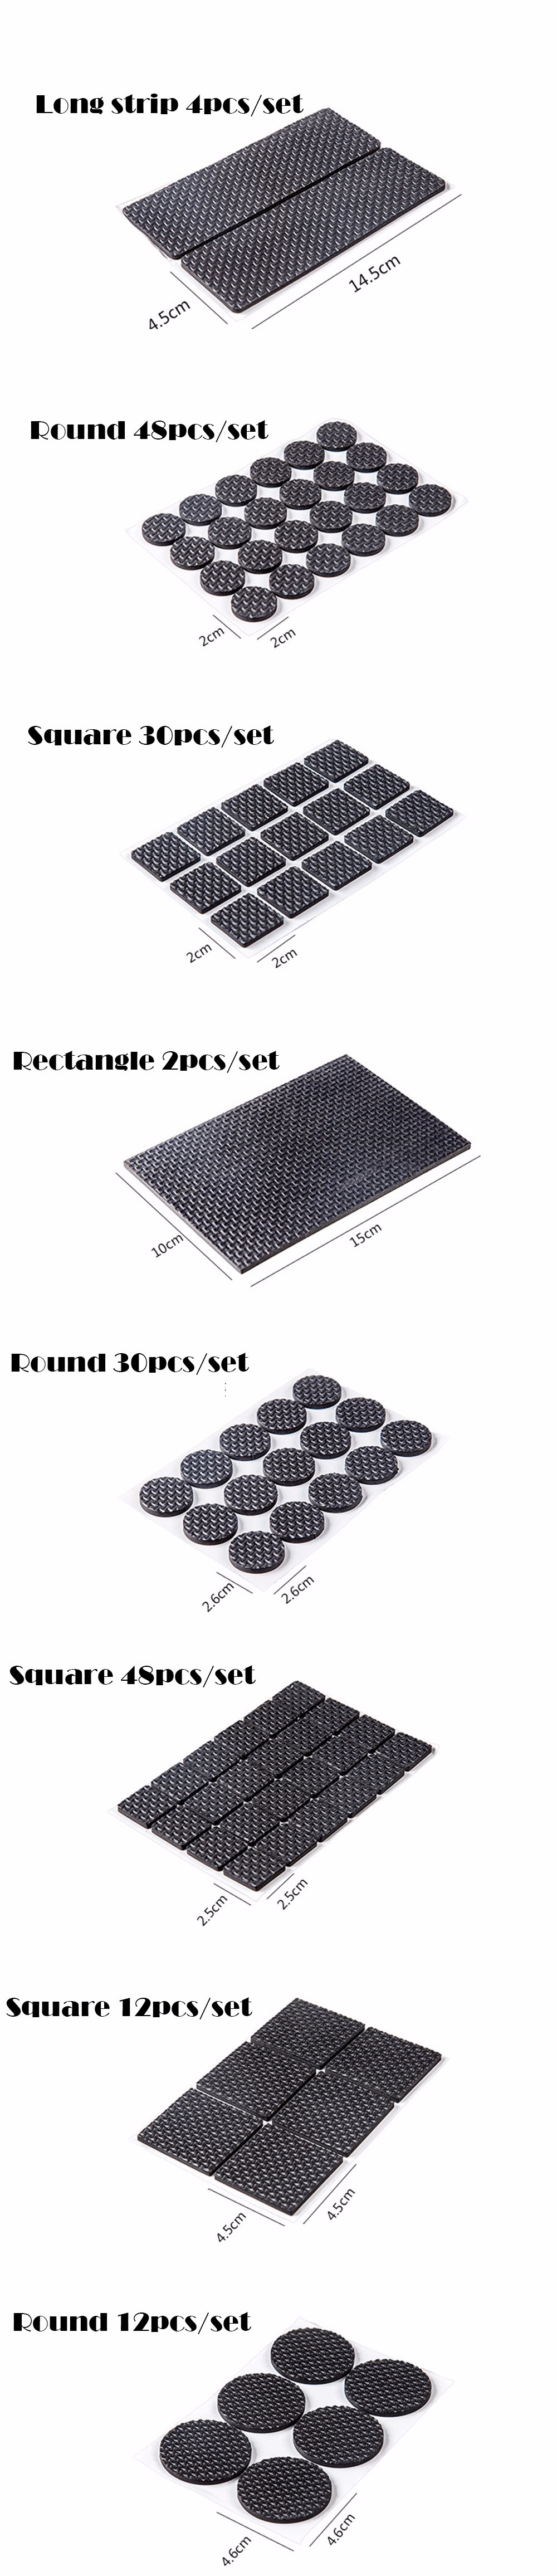 Self-Adhesive-Furniture-Chair-And-Table-Leg-Pads-Soft-Thickened-Multifunctional-Anti-Slip-Pads-Floors-Scratch-Resistant-Mats-HG0272 (24)